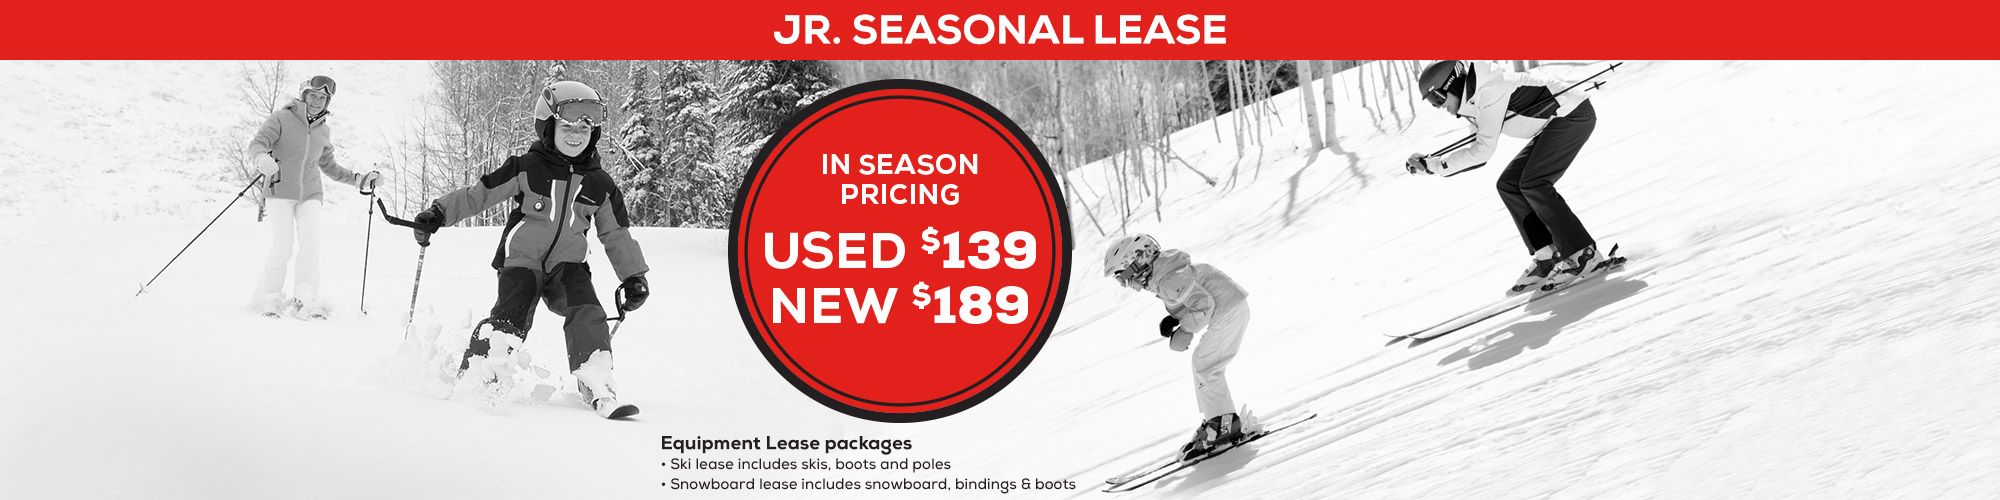 Ski Season Approaching Fast. Get The Kids Ready with out Junior Season Lease.